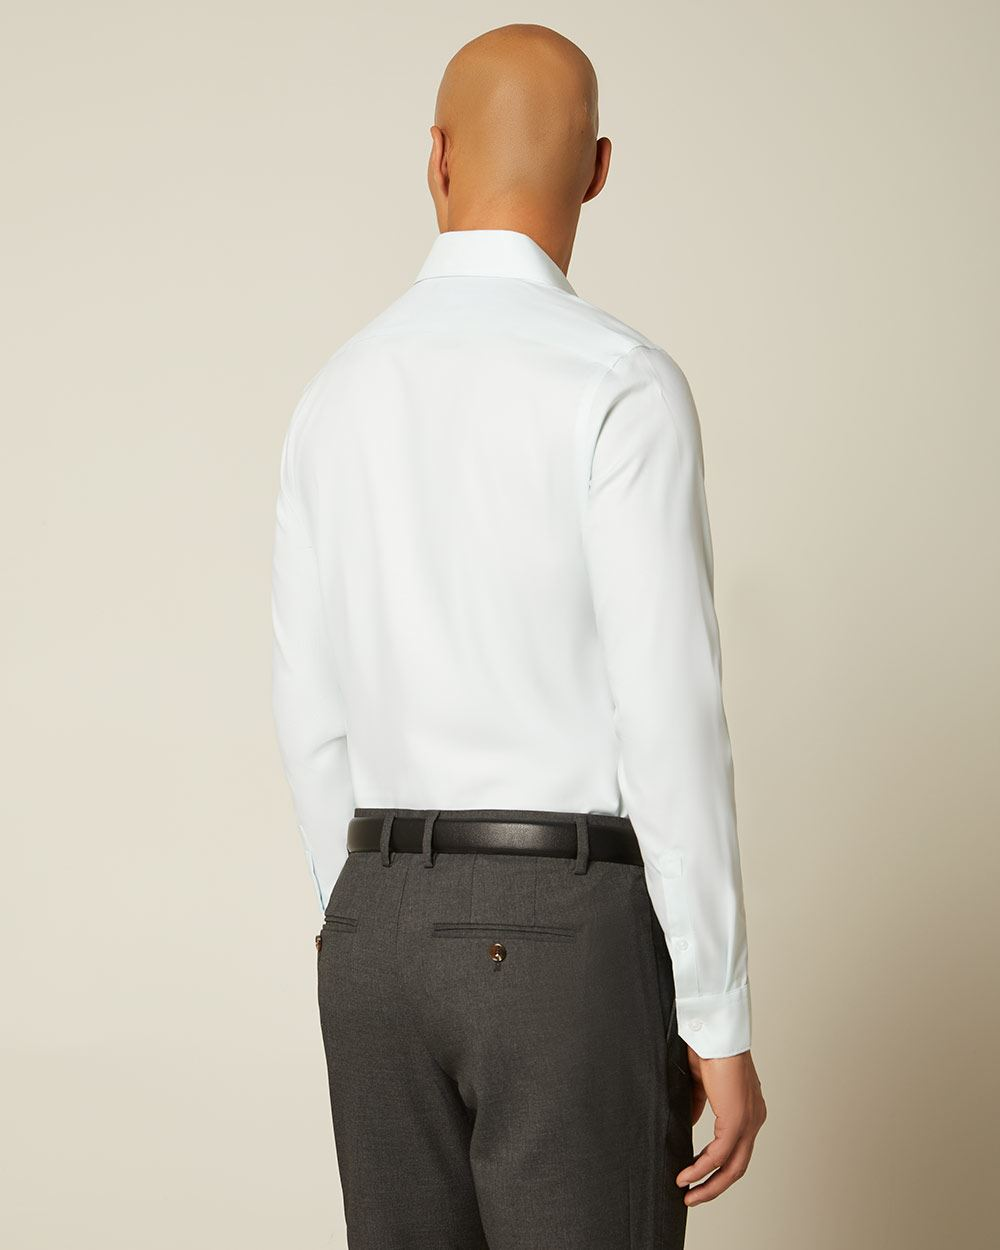 Slim fit tonal dress shirt